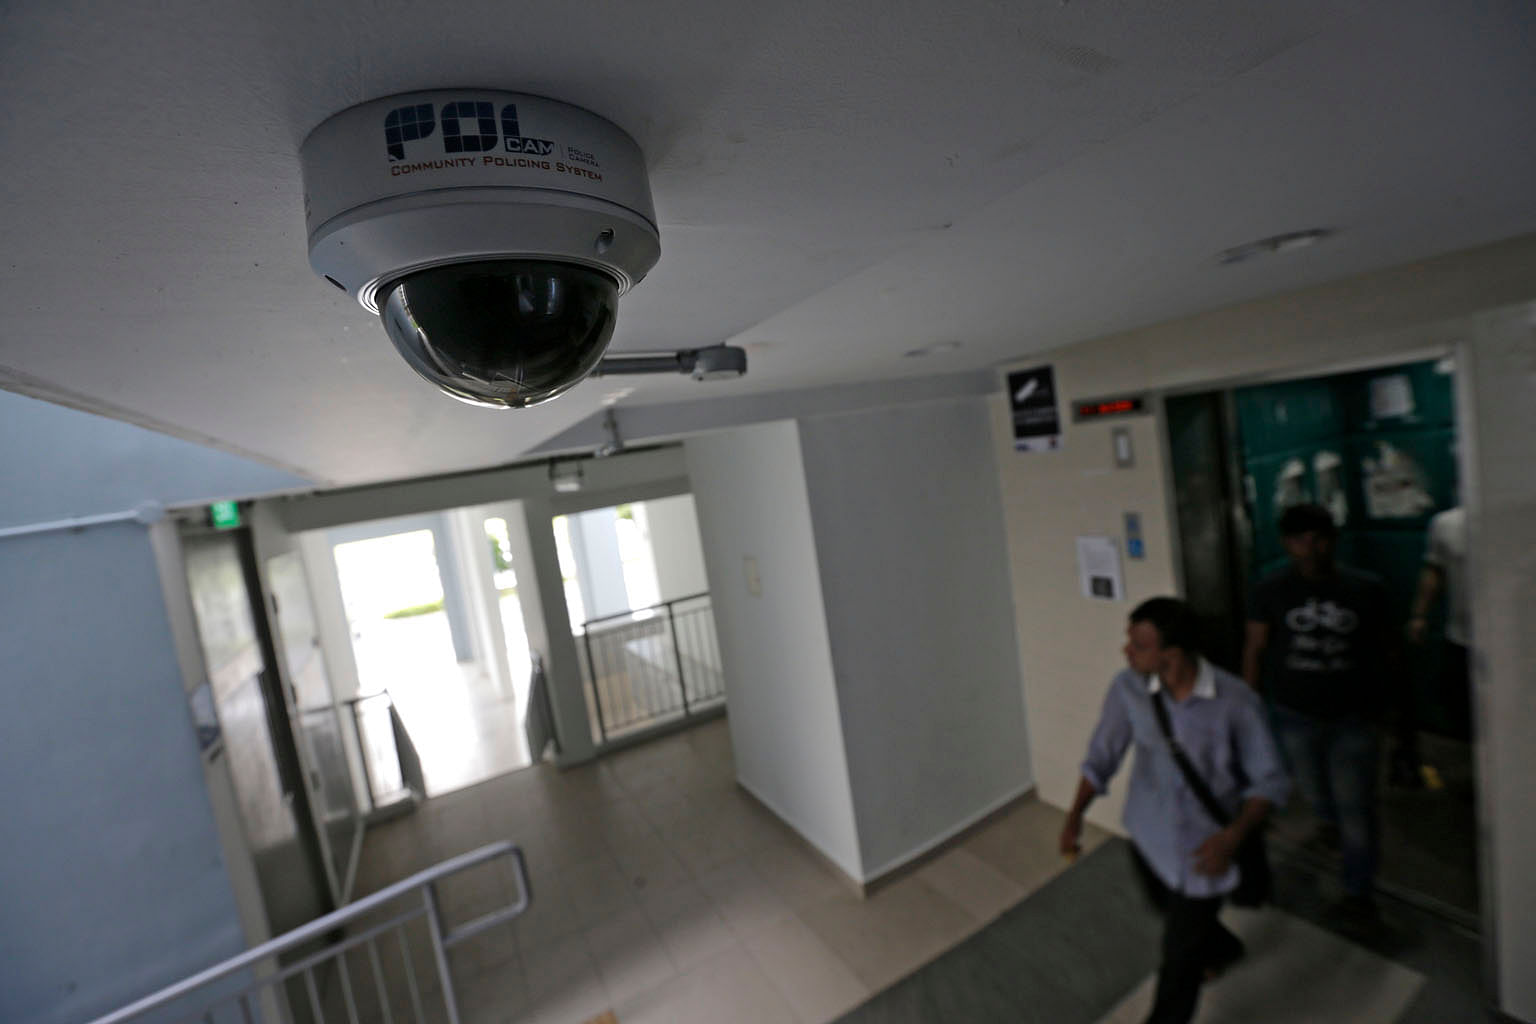 Hdb interior design in singapore 4 room flat at jurong east hwa li - Network Of Cctv Cameras Proving Effective Singapore News Top Stories The Straits Times